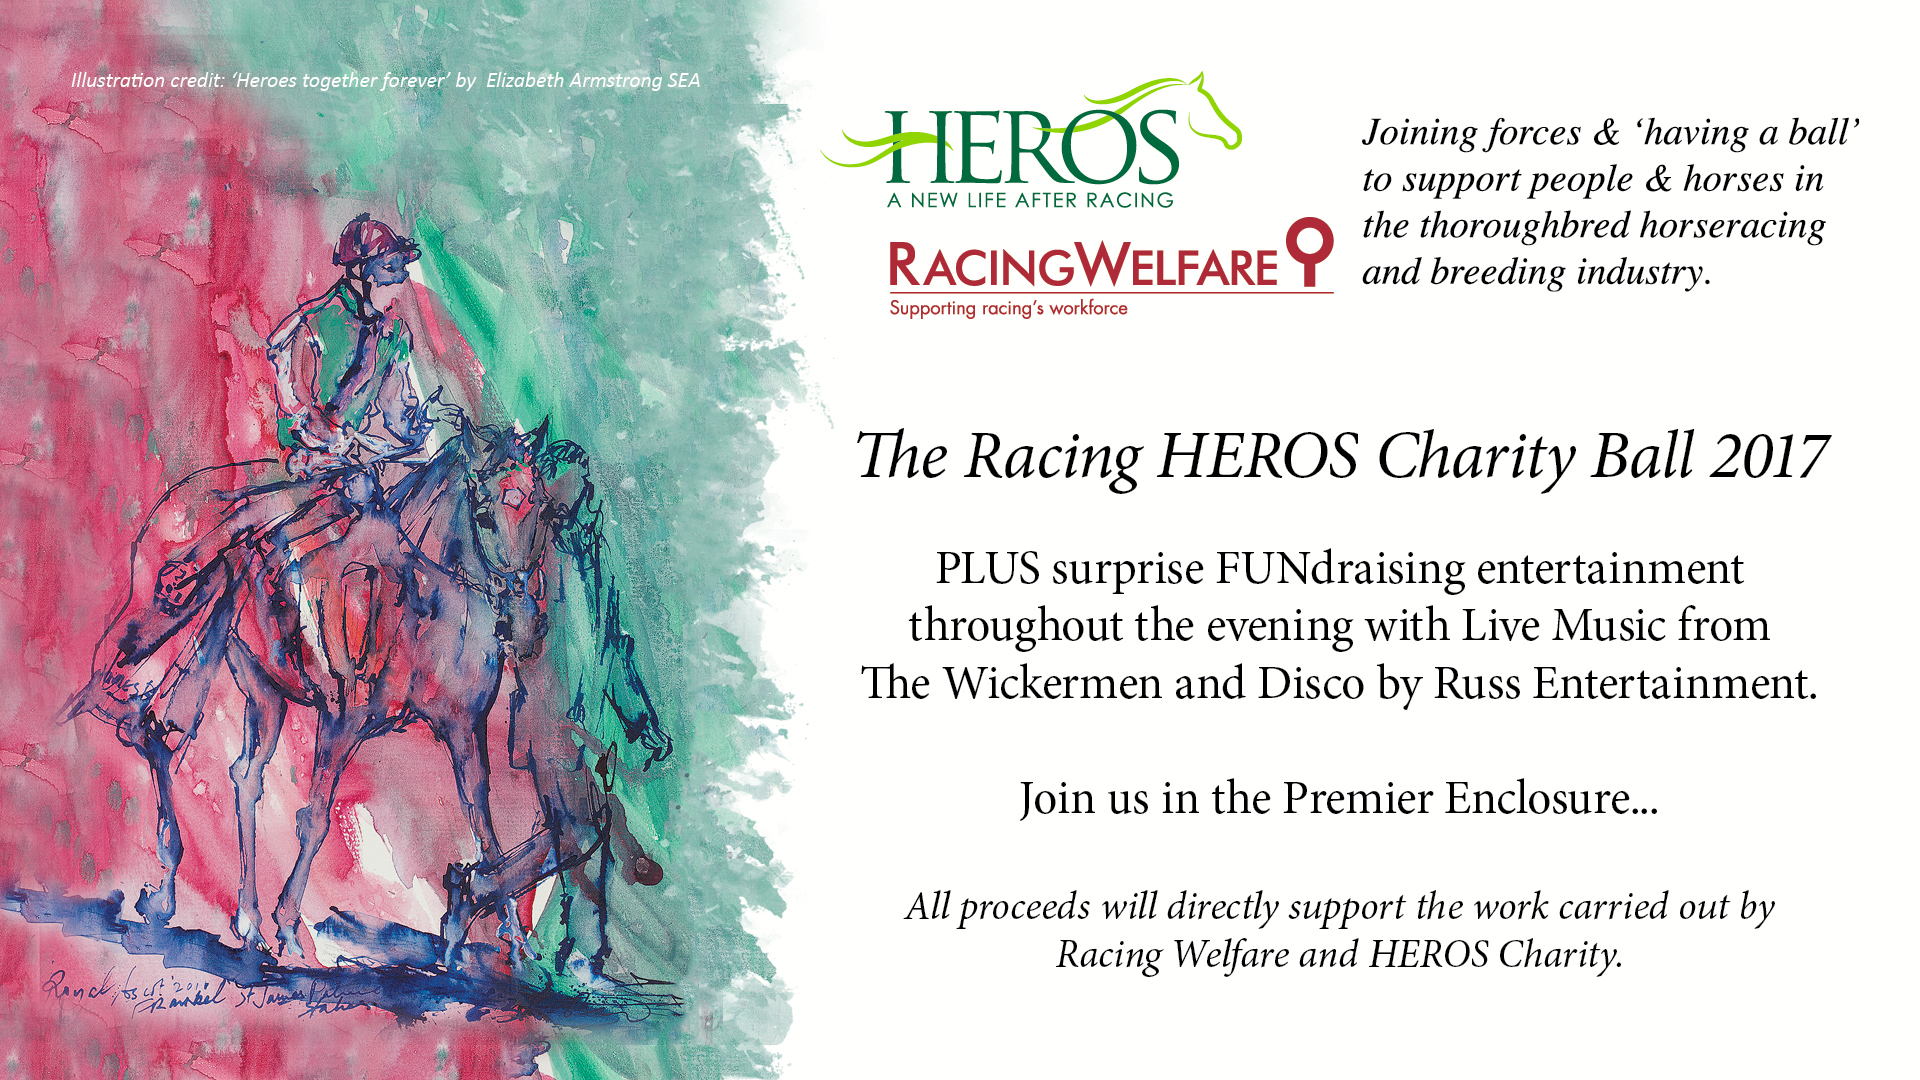 Racing Welfare & Heros Charity Ball 2017